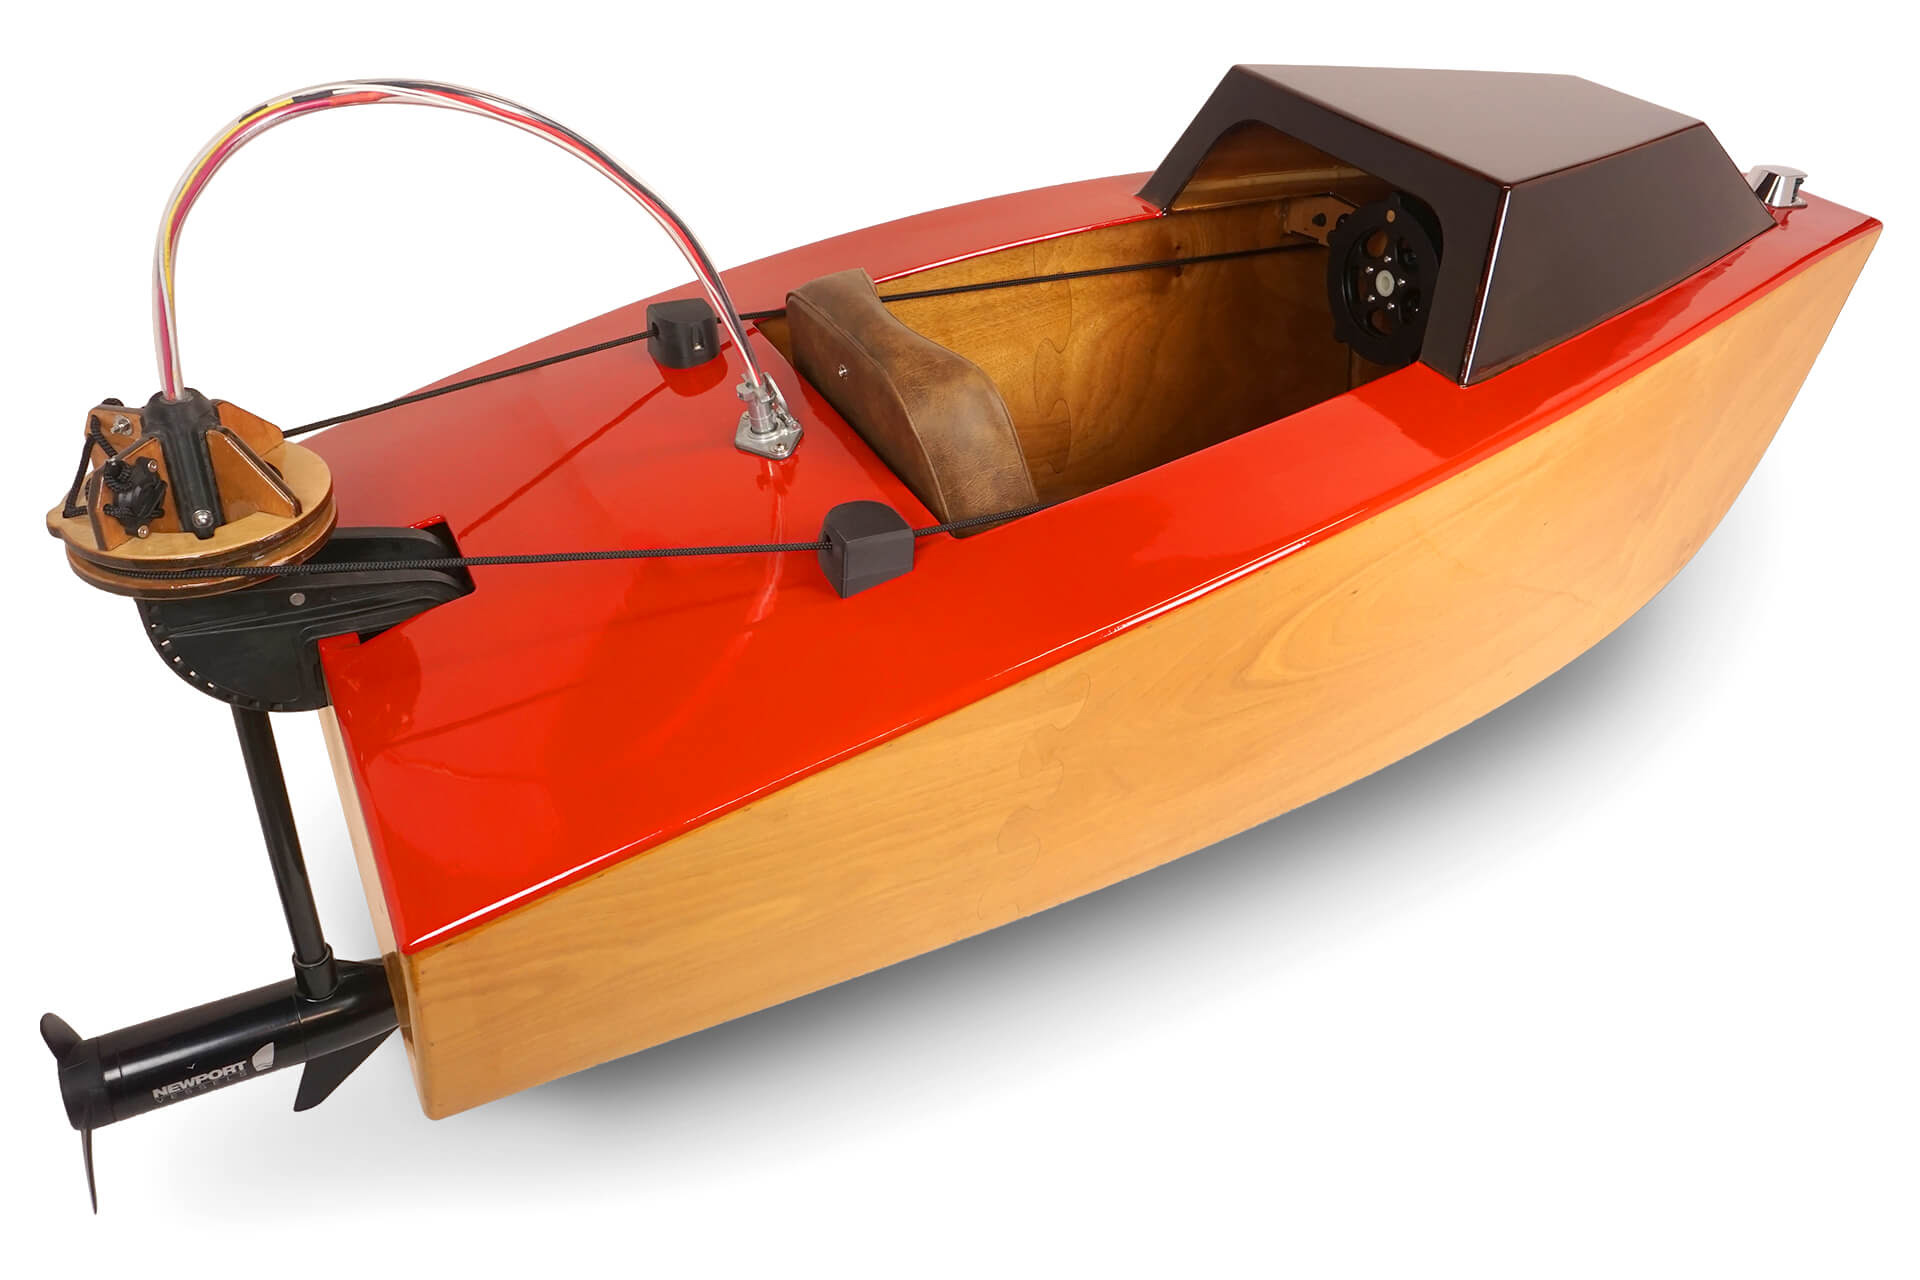 A rear 3/4 view of the mini electric boat, showing off the electric trolling motor propulsion